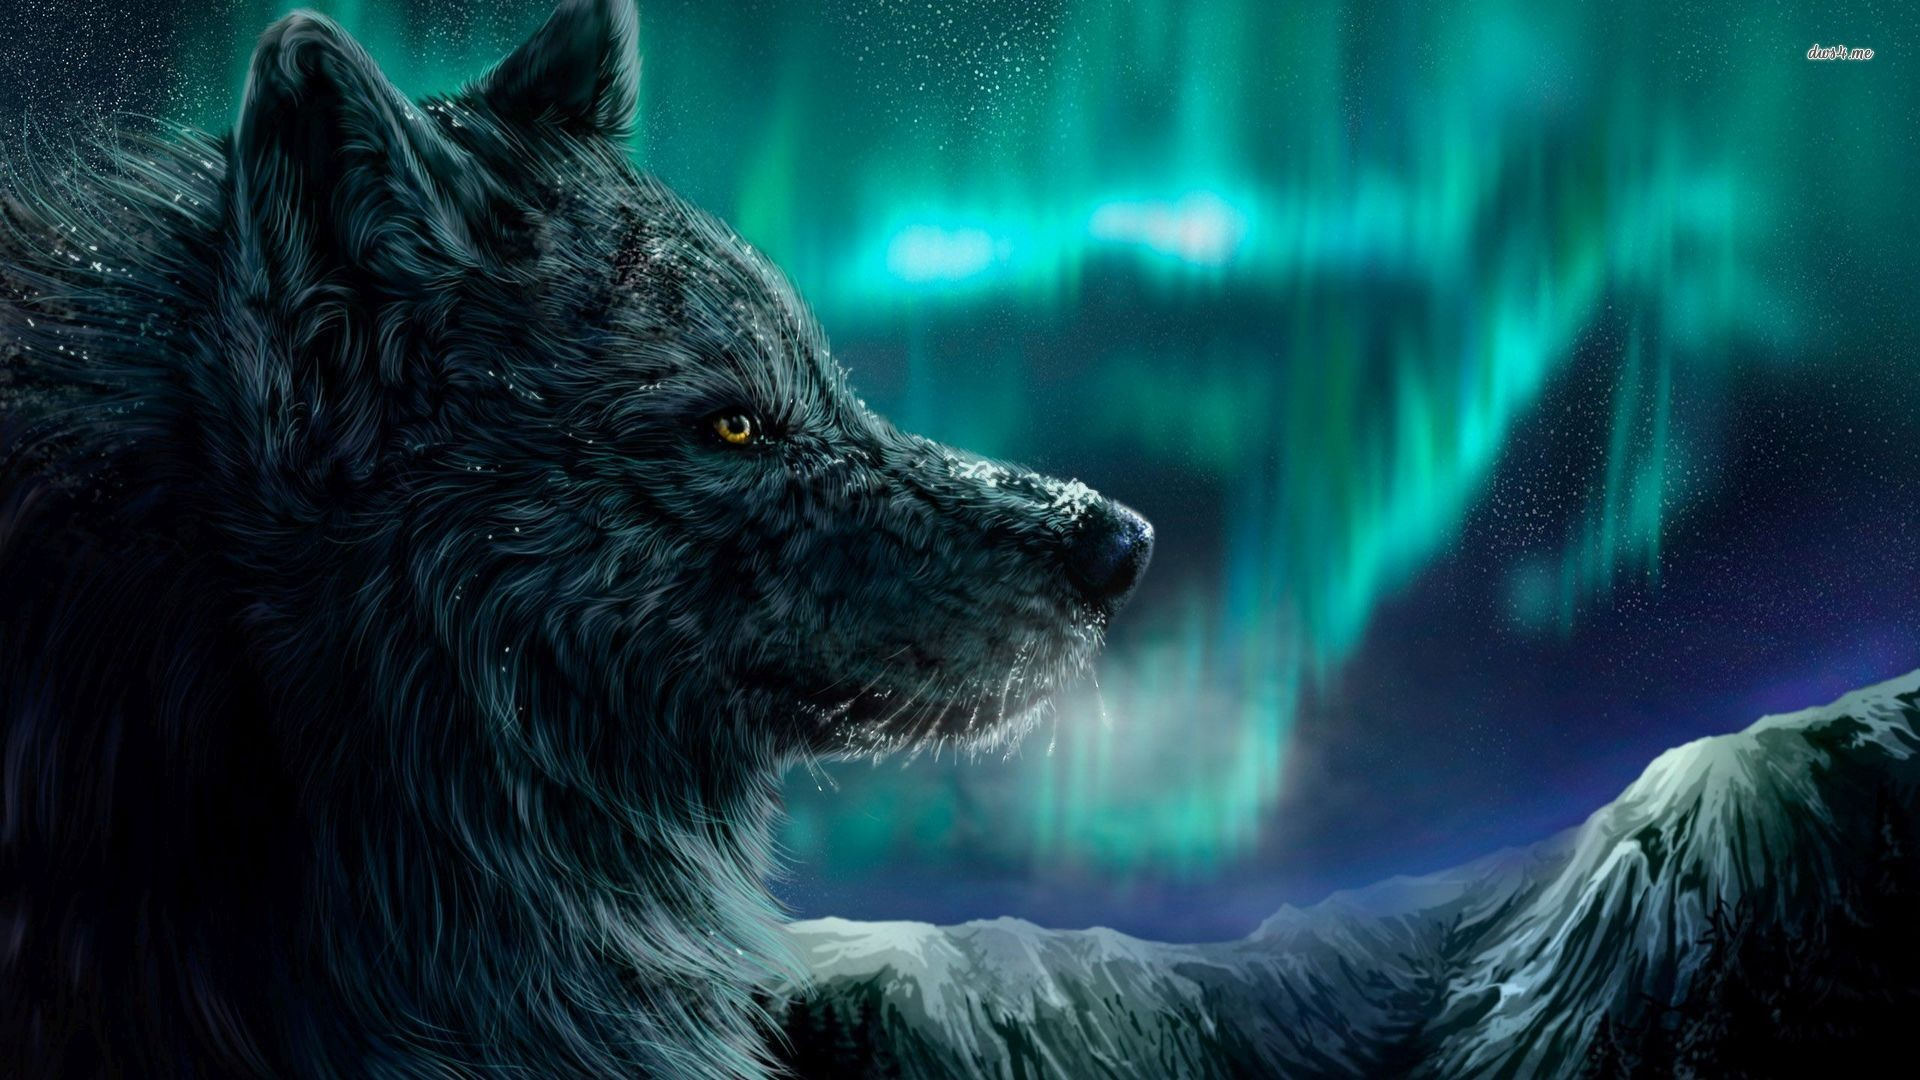 1920x1080 28647-wolf--digital-art-wallpaper.jpg